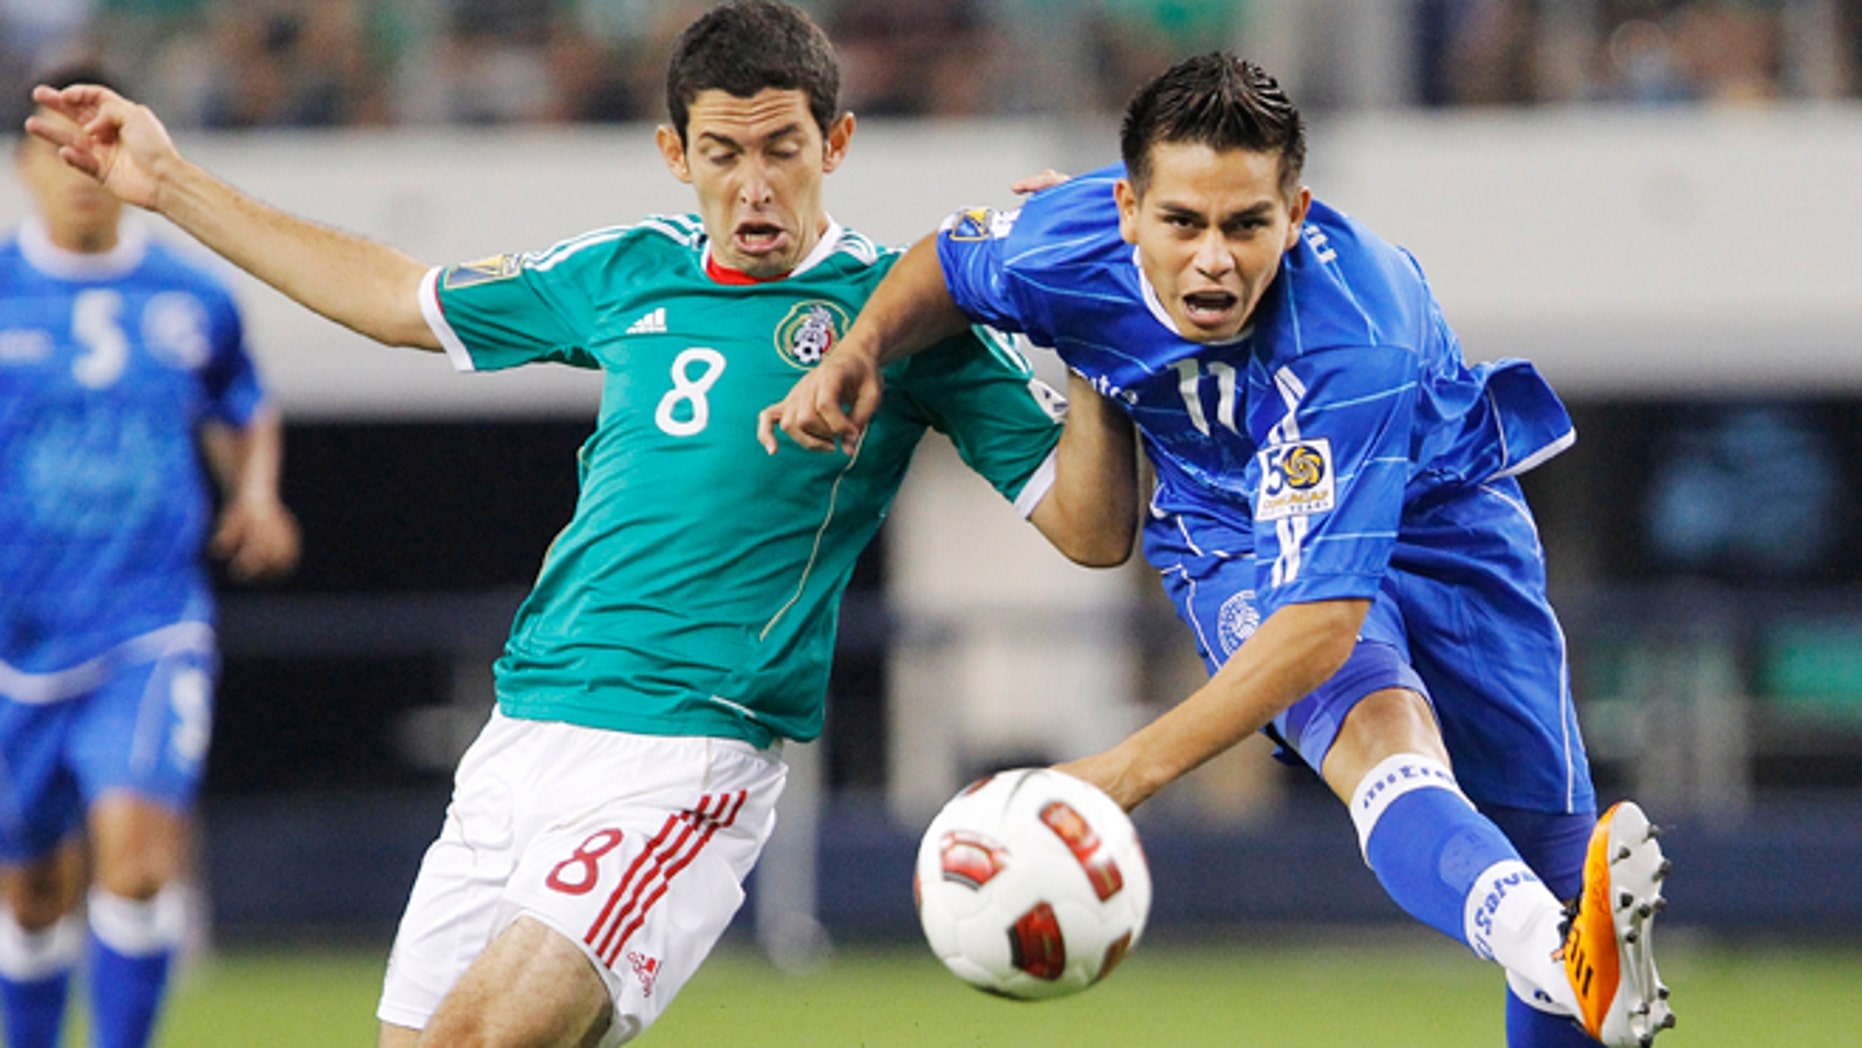 FILE - In this June 5, 2011 file photo, Mexico's Israel Castro, left, and El Salvador's Rodolfo Zelaya fight for the ball during the first half a CONCACAF Gold Cup soccer match at Cowboys Stadium in Arlington, Texas. El Salvador's football federation announced on Wednesday, Aug. 21, 2013 it has suspended 22 of their players, included Zelaya, in an investigation into alleged match-fixing in games by the national team from 2010 to 2012. (AP Photo/Brandon Wade, File)